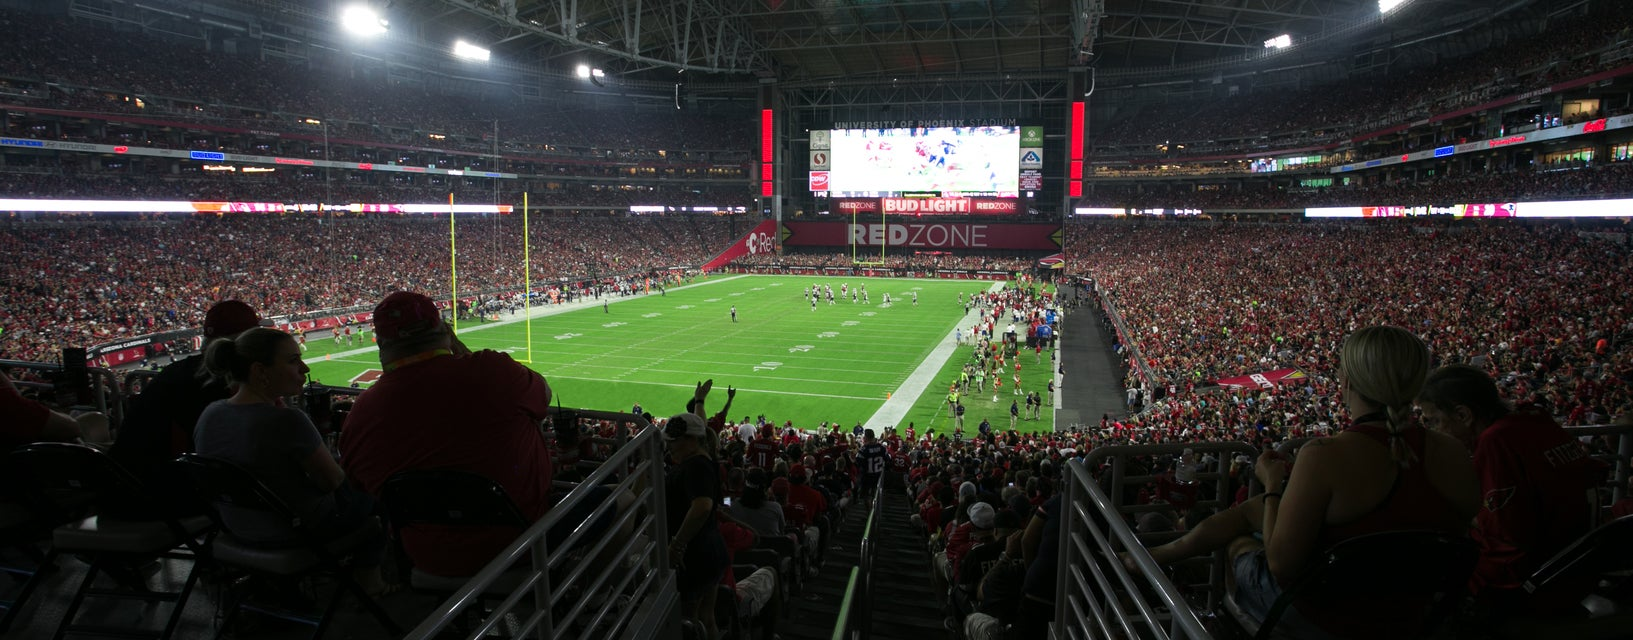 Seat view from Main Level End Zone